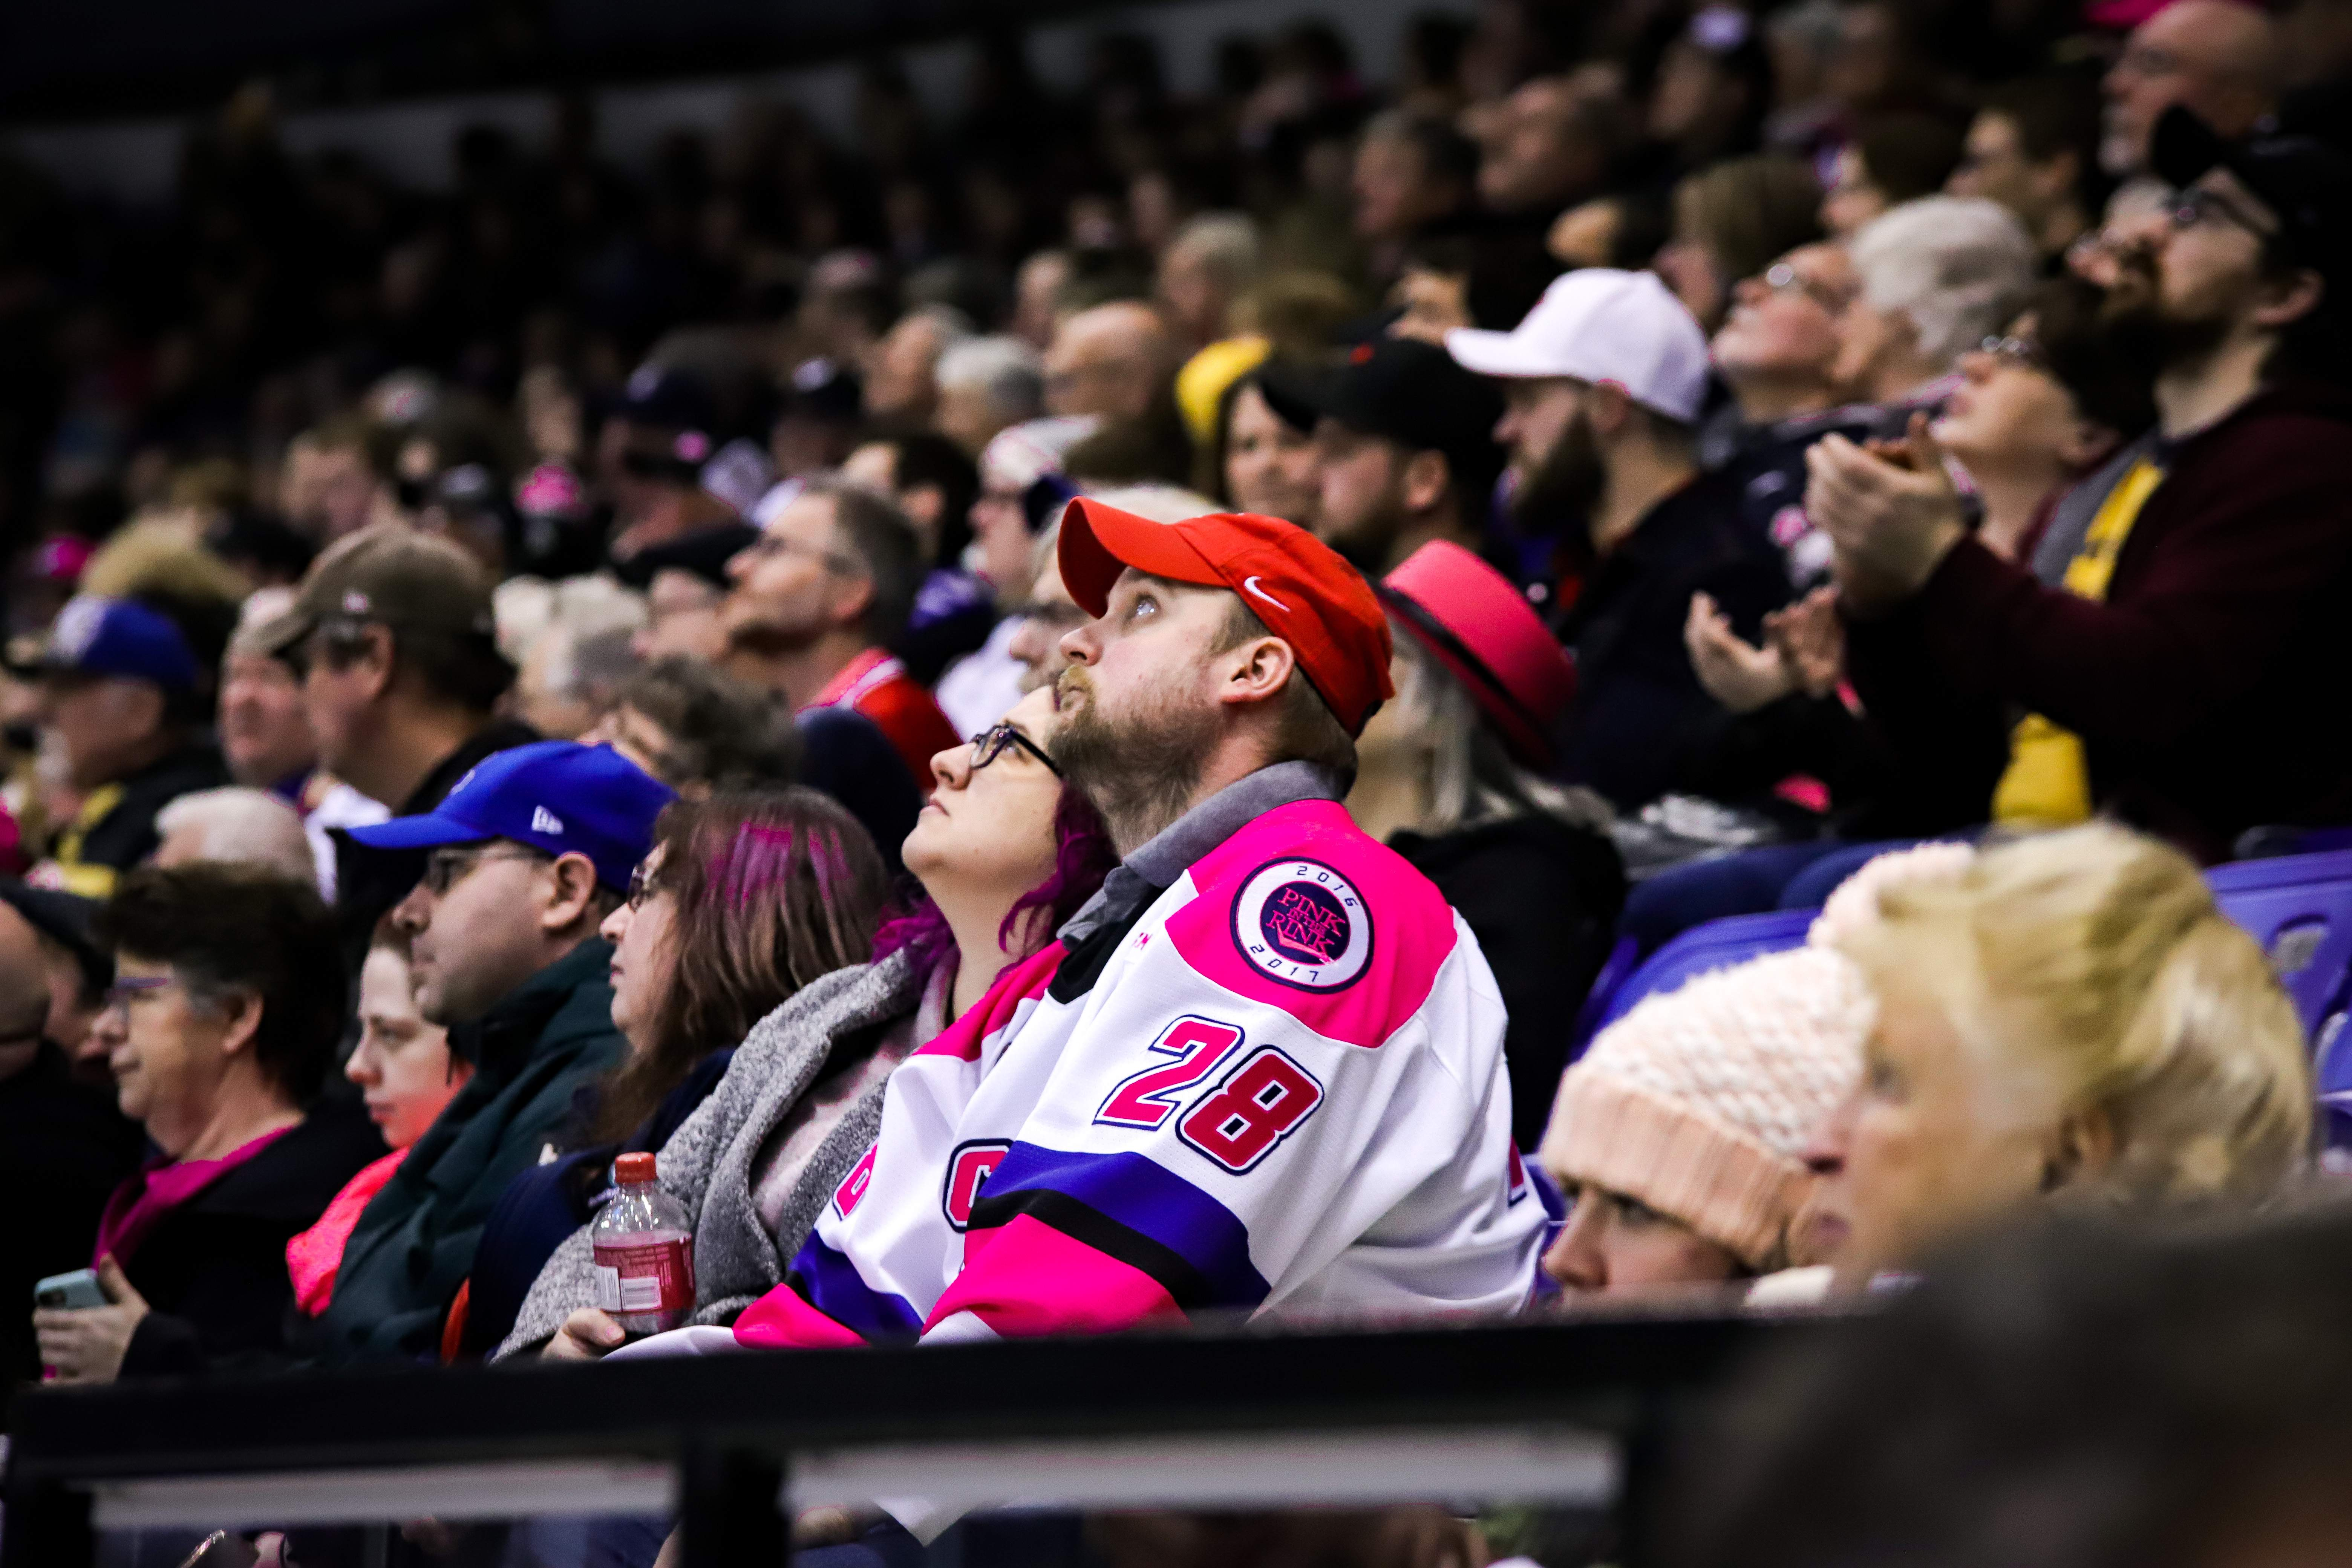 Fans wore pink in support of Cancer research.  Photo by Nathanael Laranjeiras